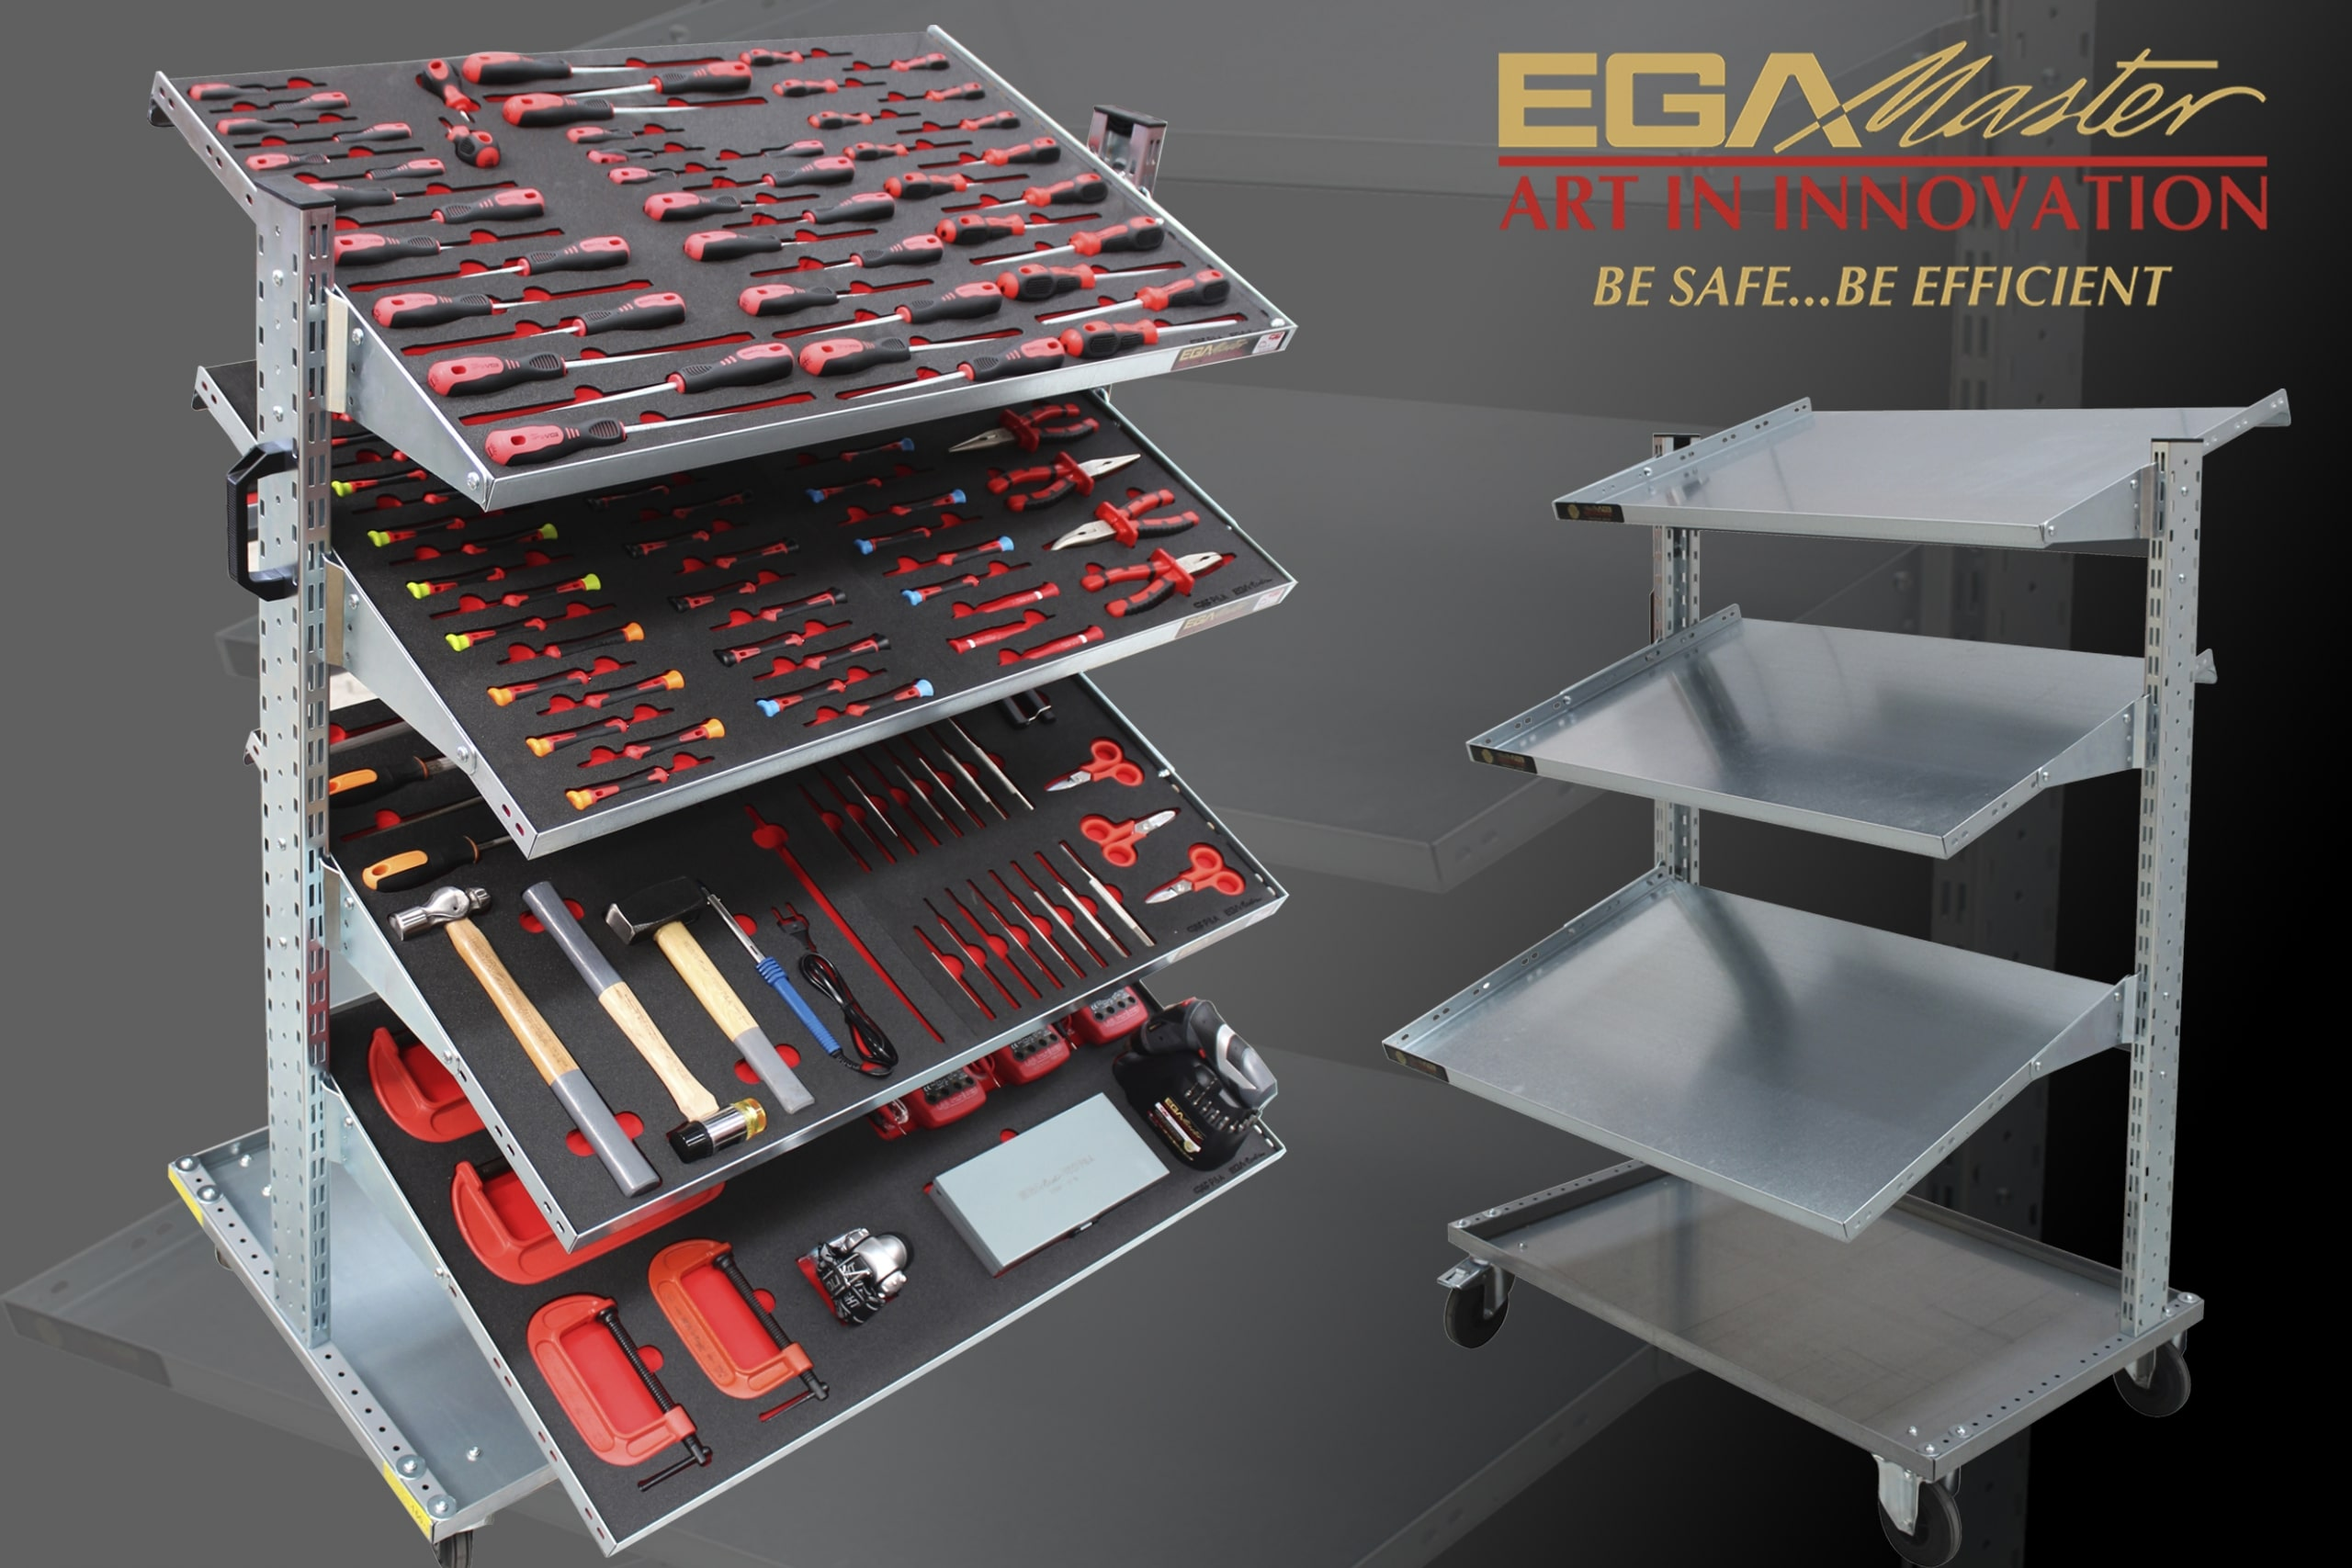 Egamaster hand tools supplier